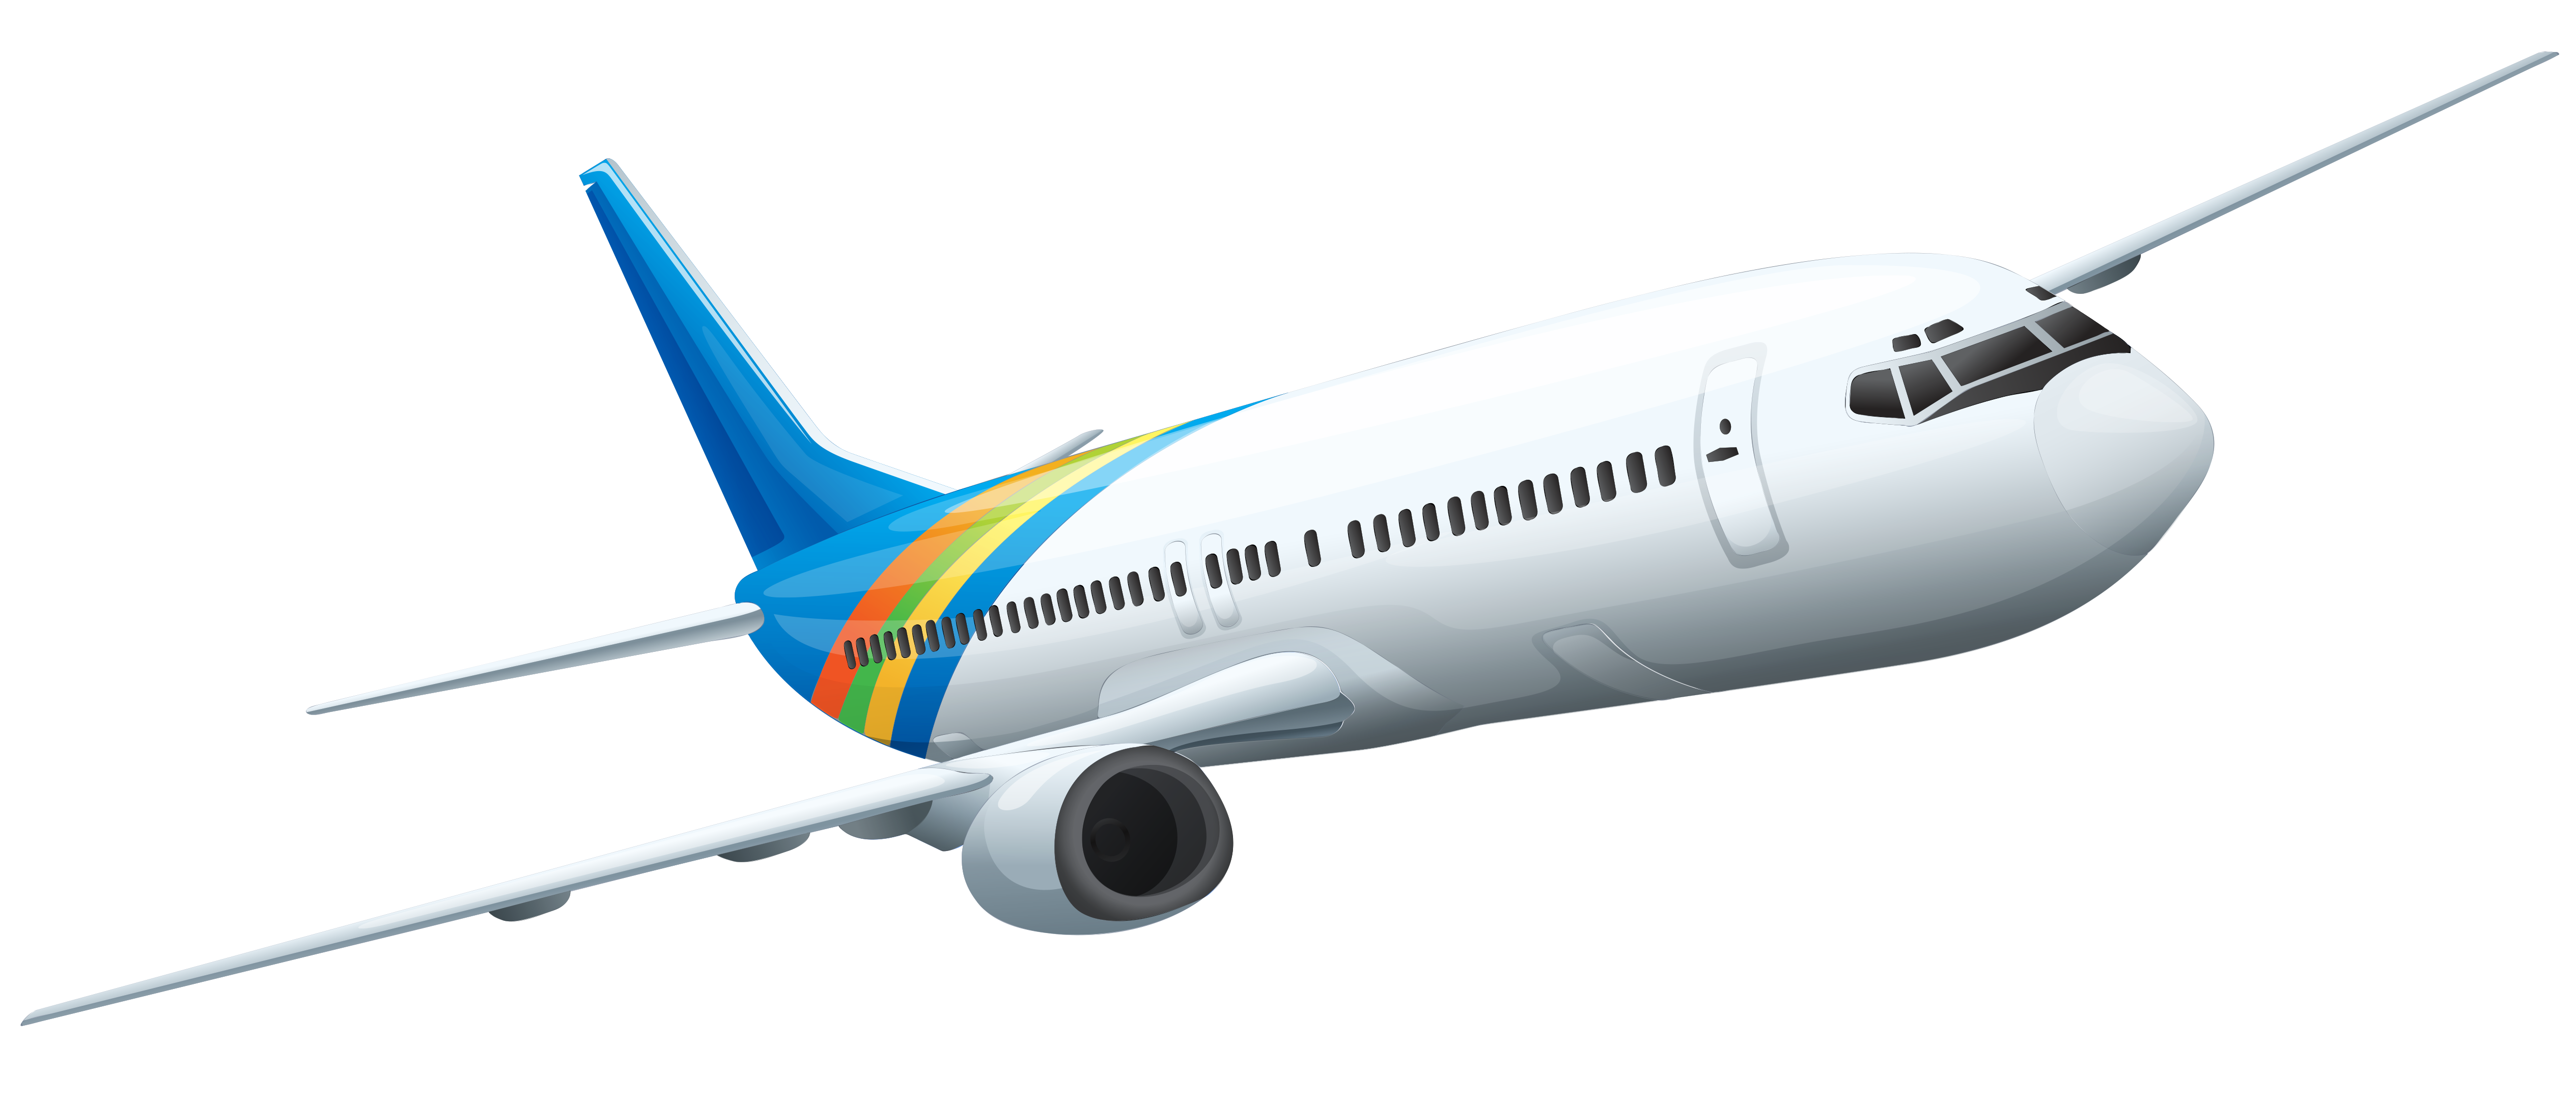 Flights Png - Pin by Said M on FRAME | Best airlines, Book cheap flights, Cheap ...